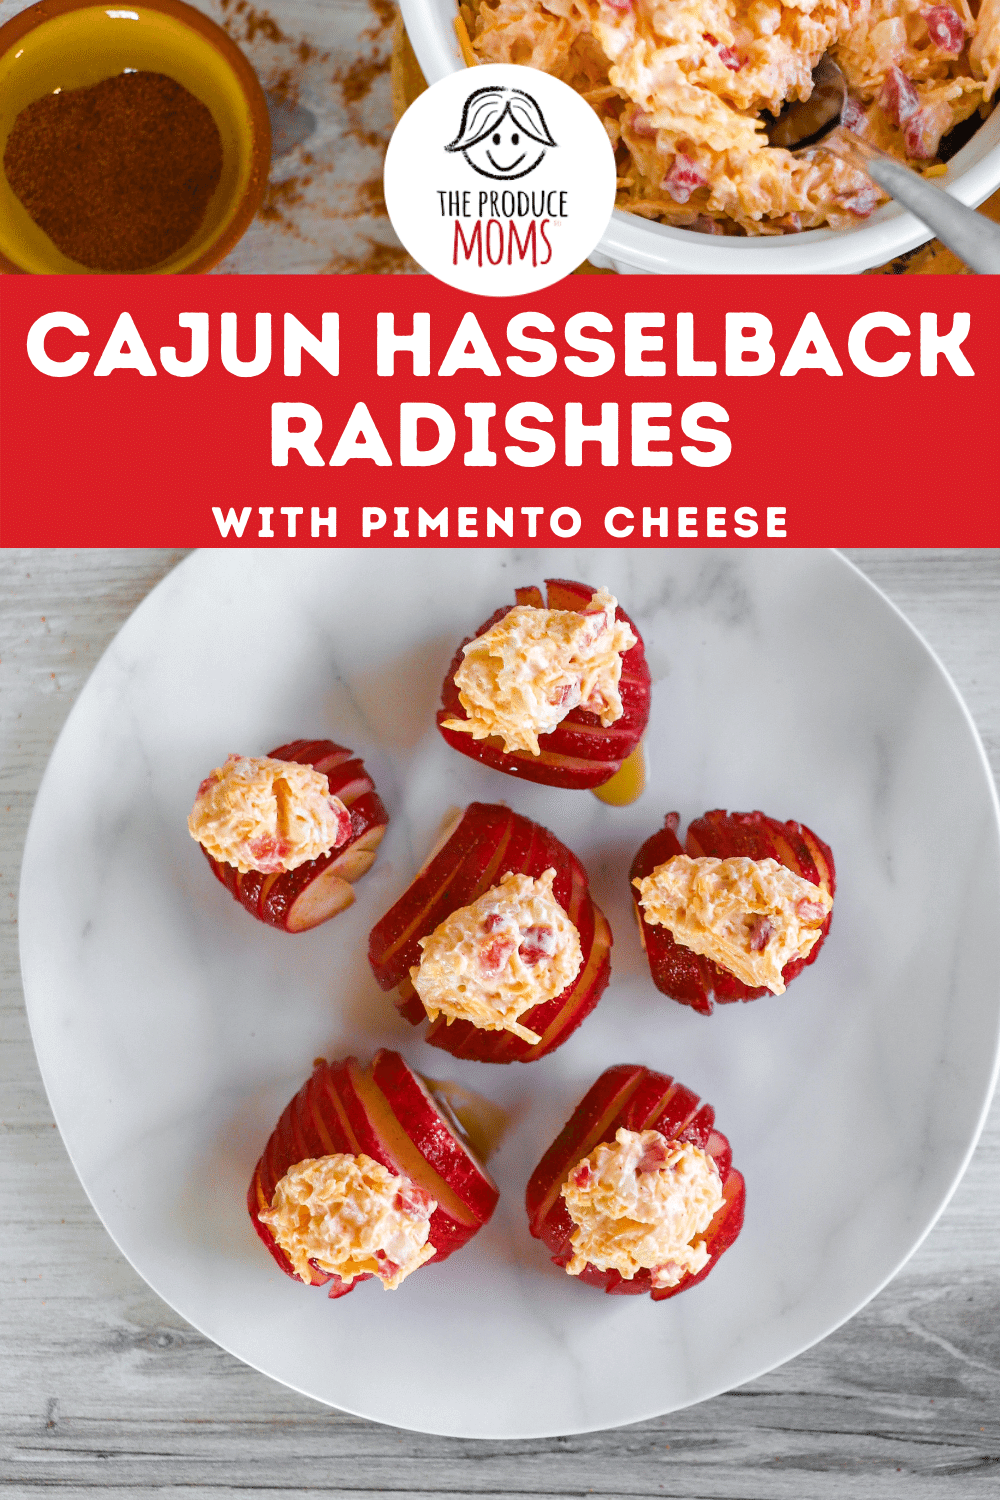 Cajun-Spiced Hasselback Radishes with Pimento Cheese